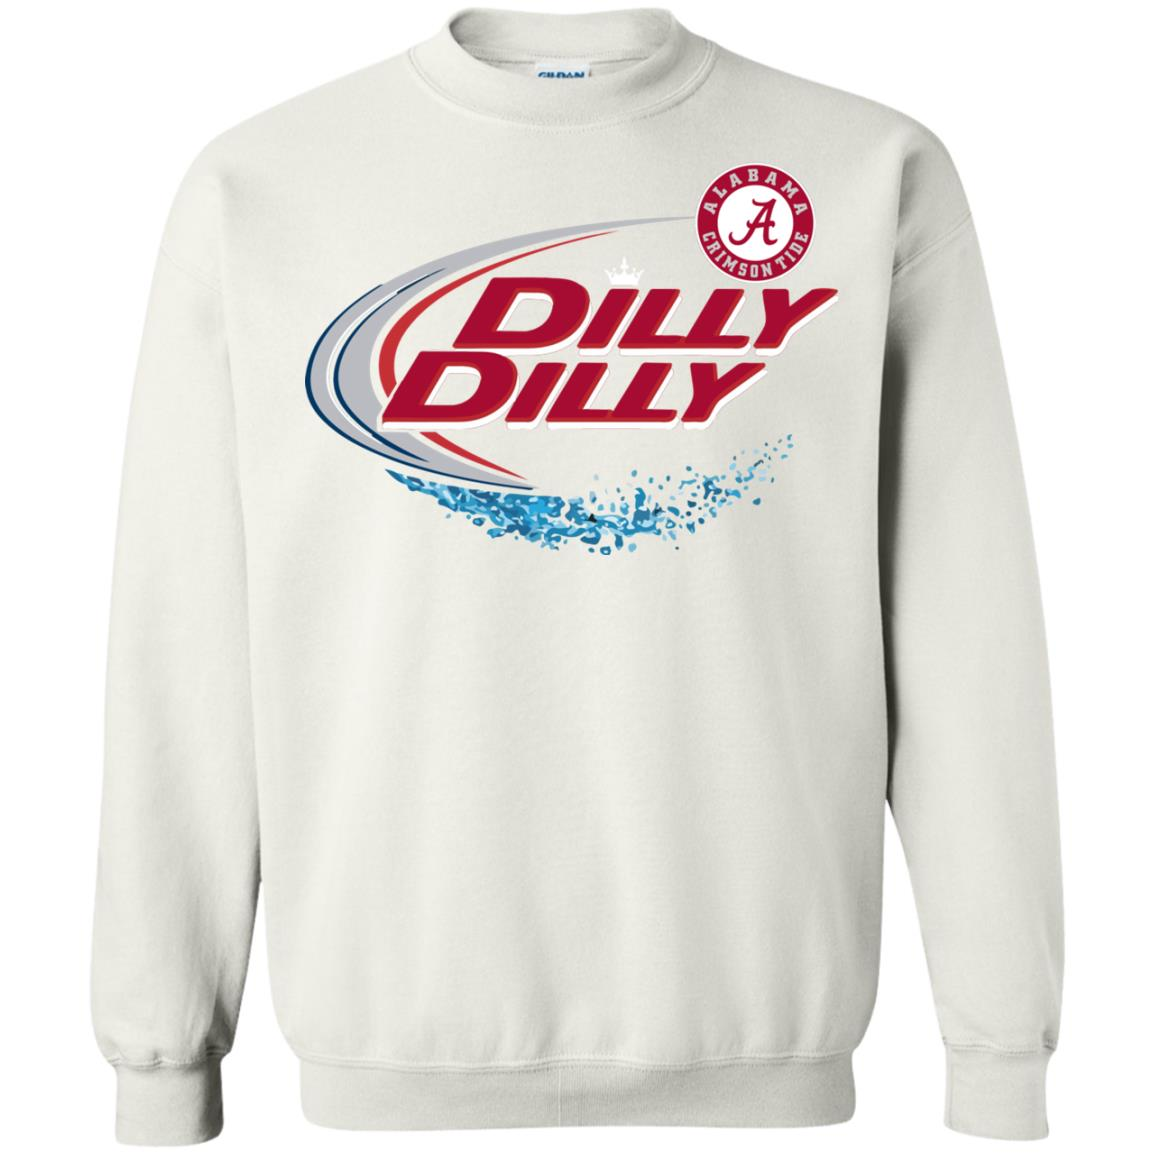 image 93 - Dilly Dilly T-shirt Crimson Tide